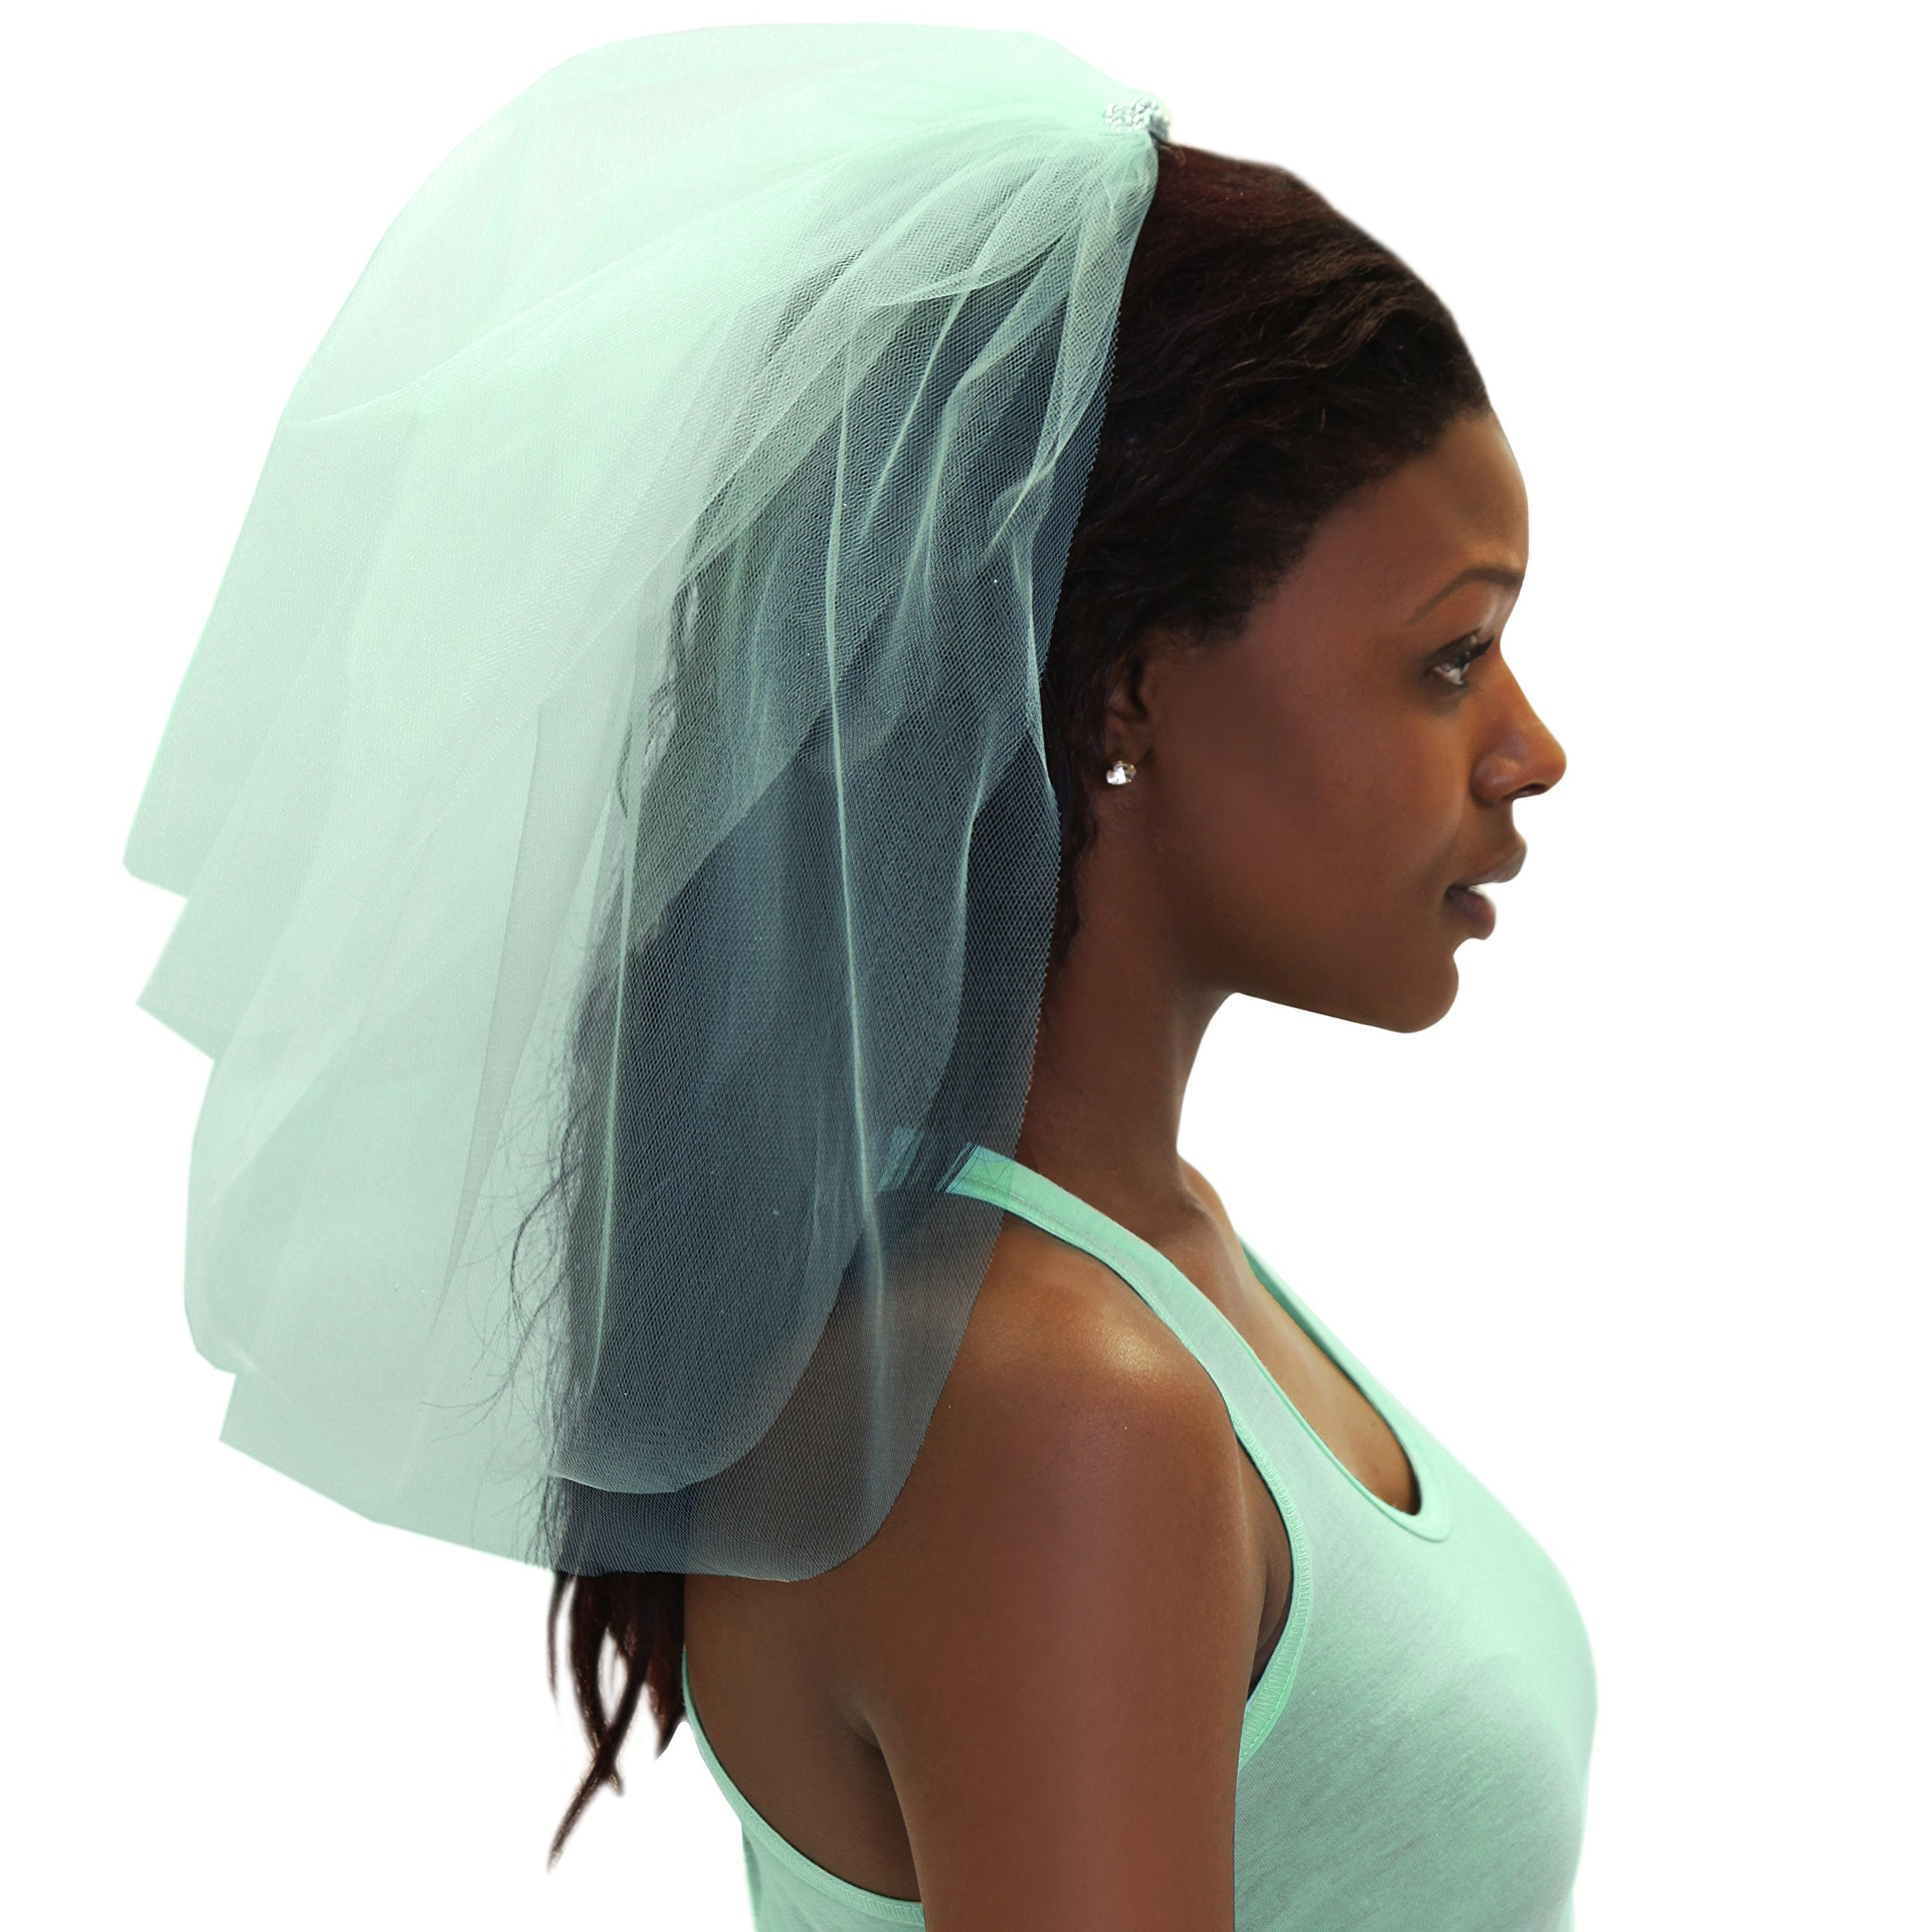 Bachelorette VEIL - Bachelorette Party Accessories for the Bride to Be Mint by RhinestoneSash (Image #1)